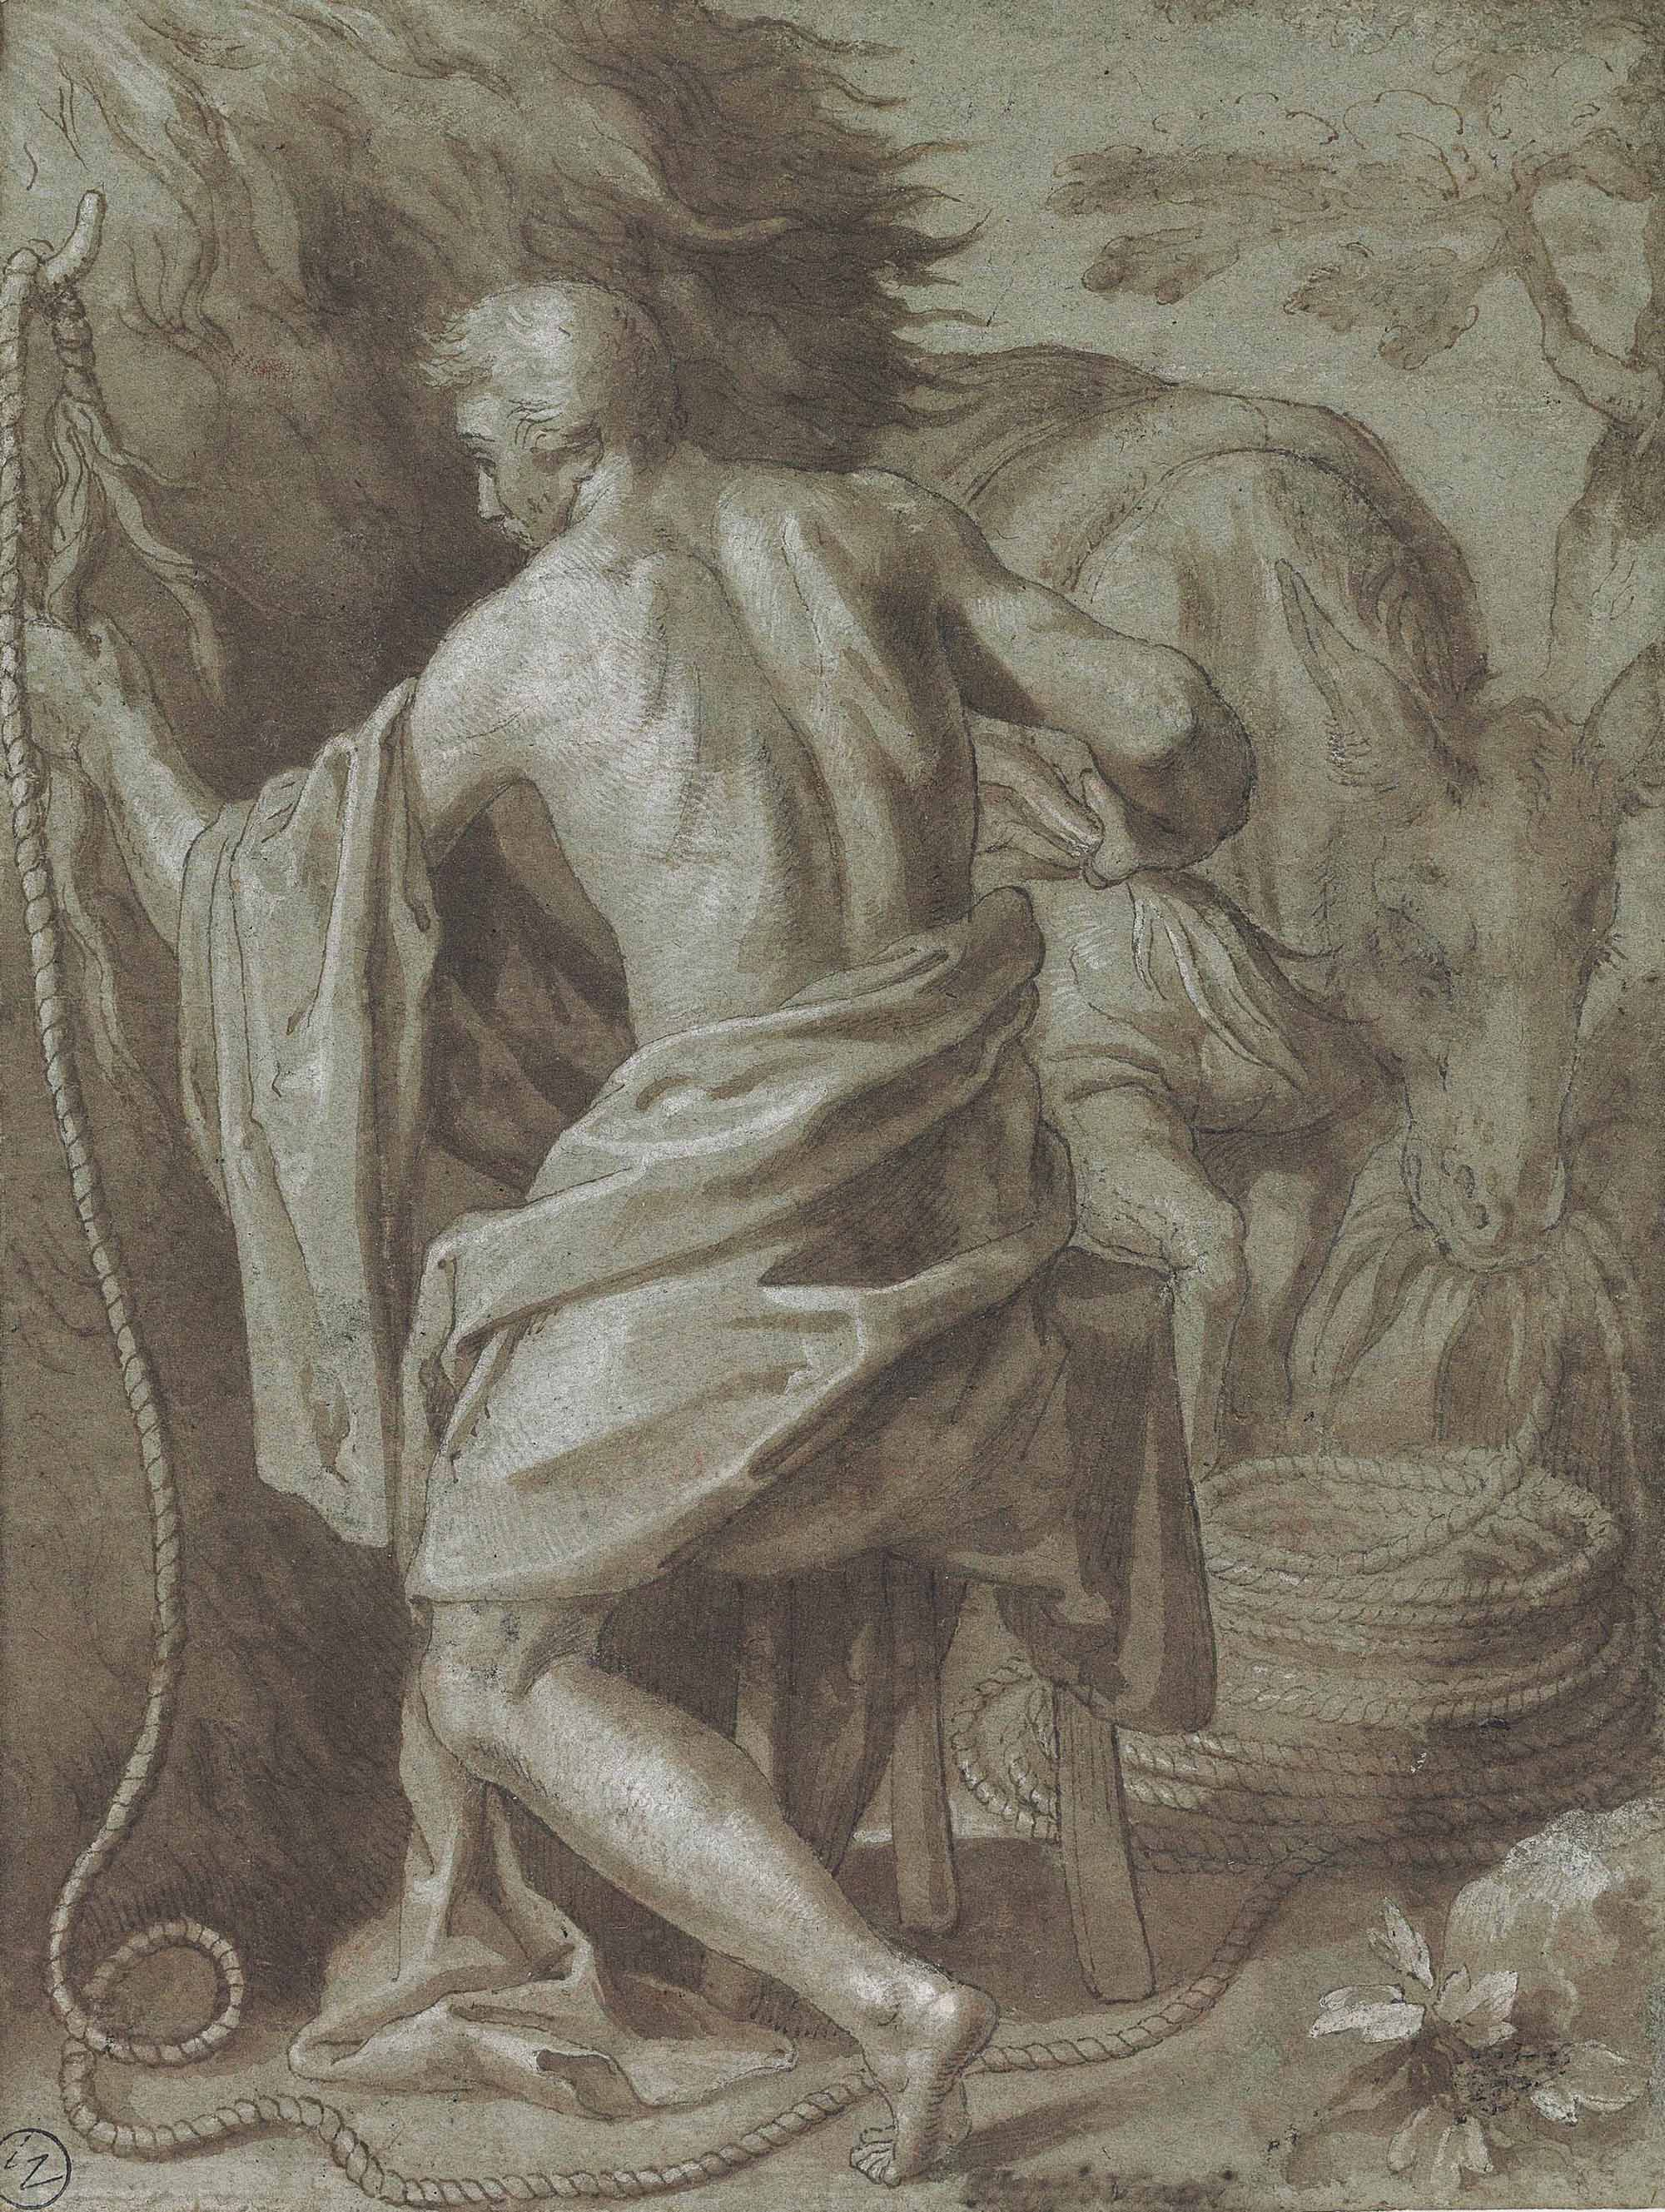 Ocnus: An allegory of the Futility of Labour